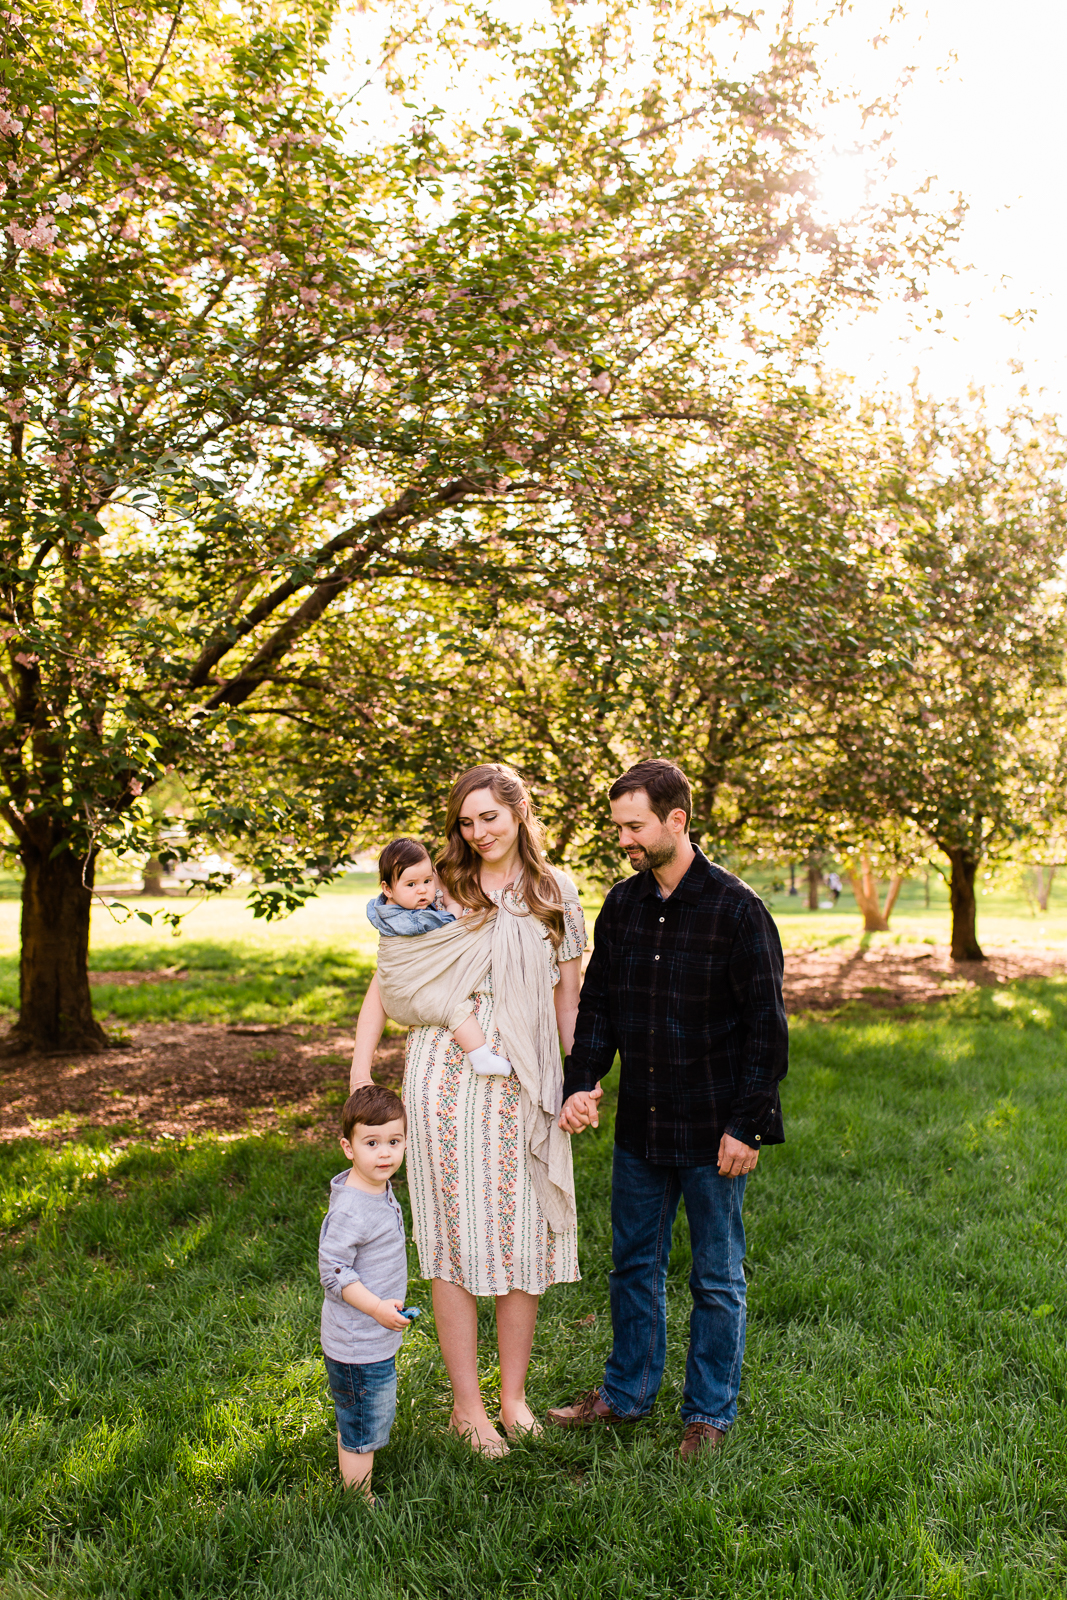 Family photos at Loose Park under the flowering trees, Kansas City family photographer, Rebecca Clair photography